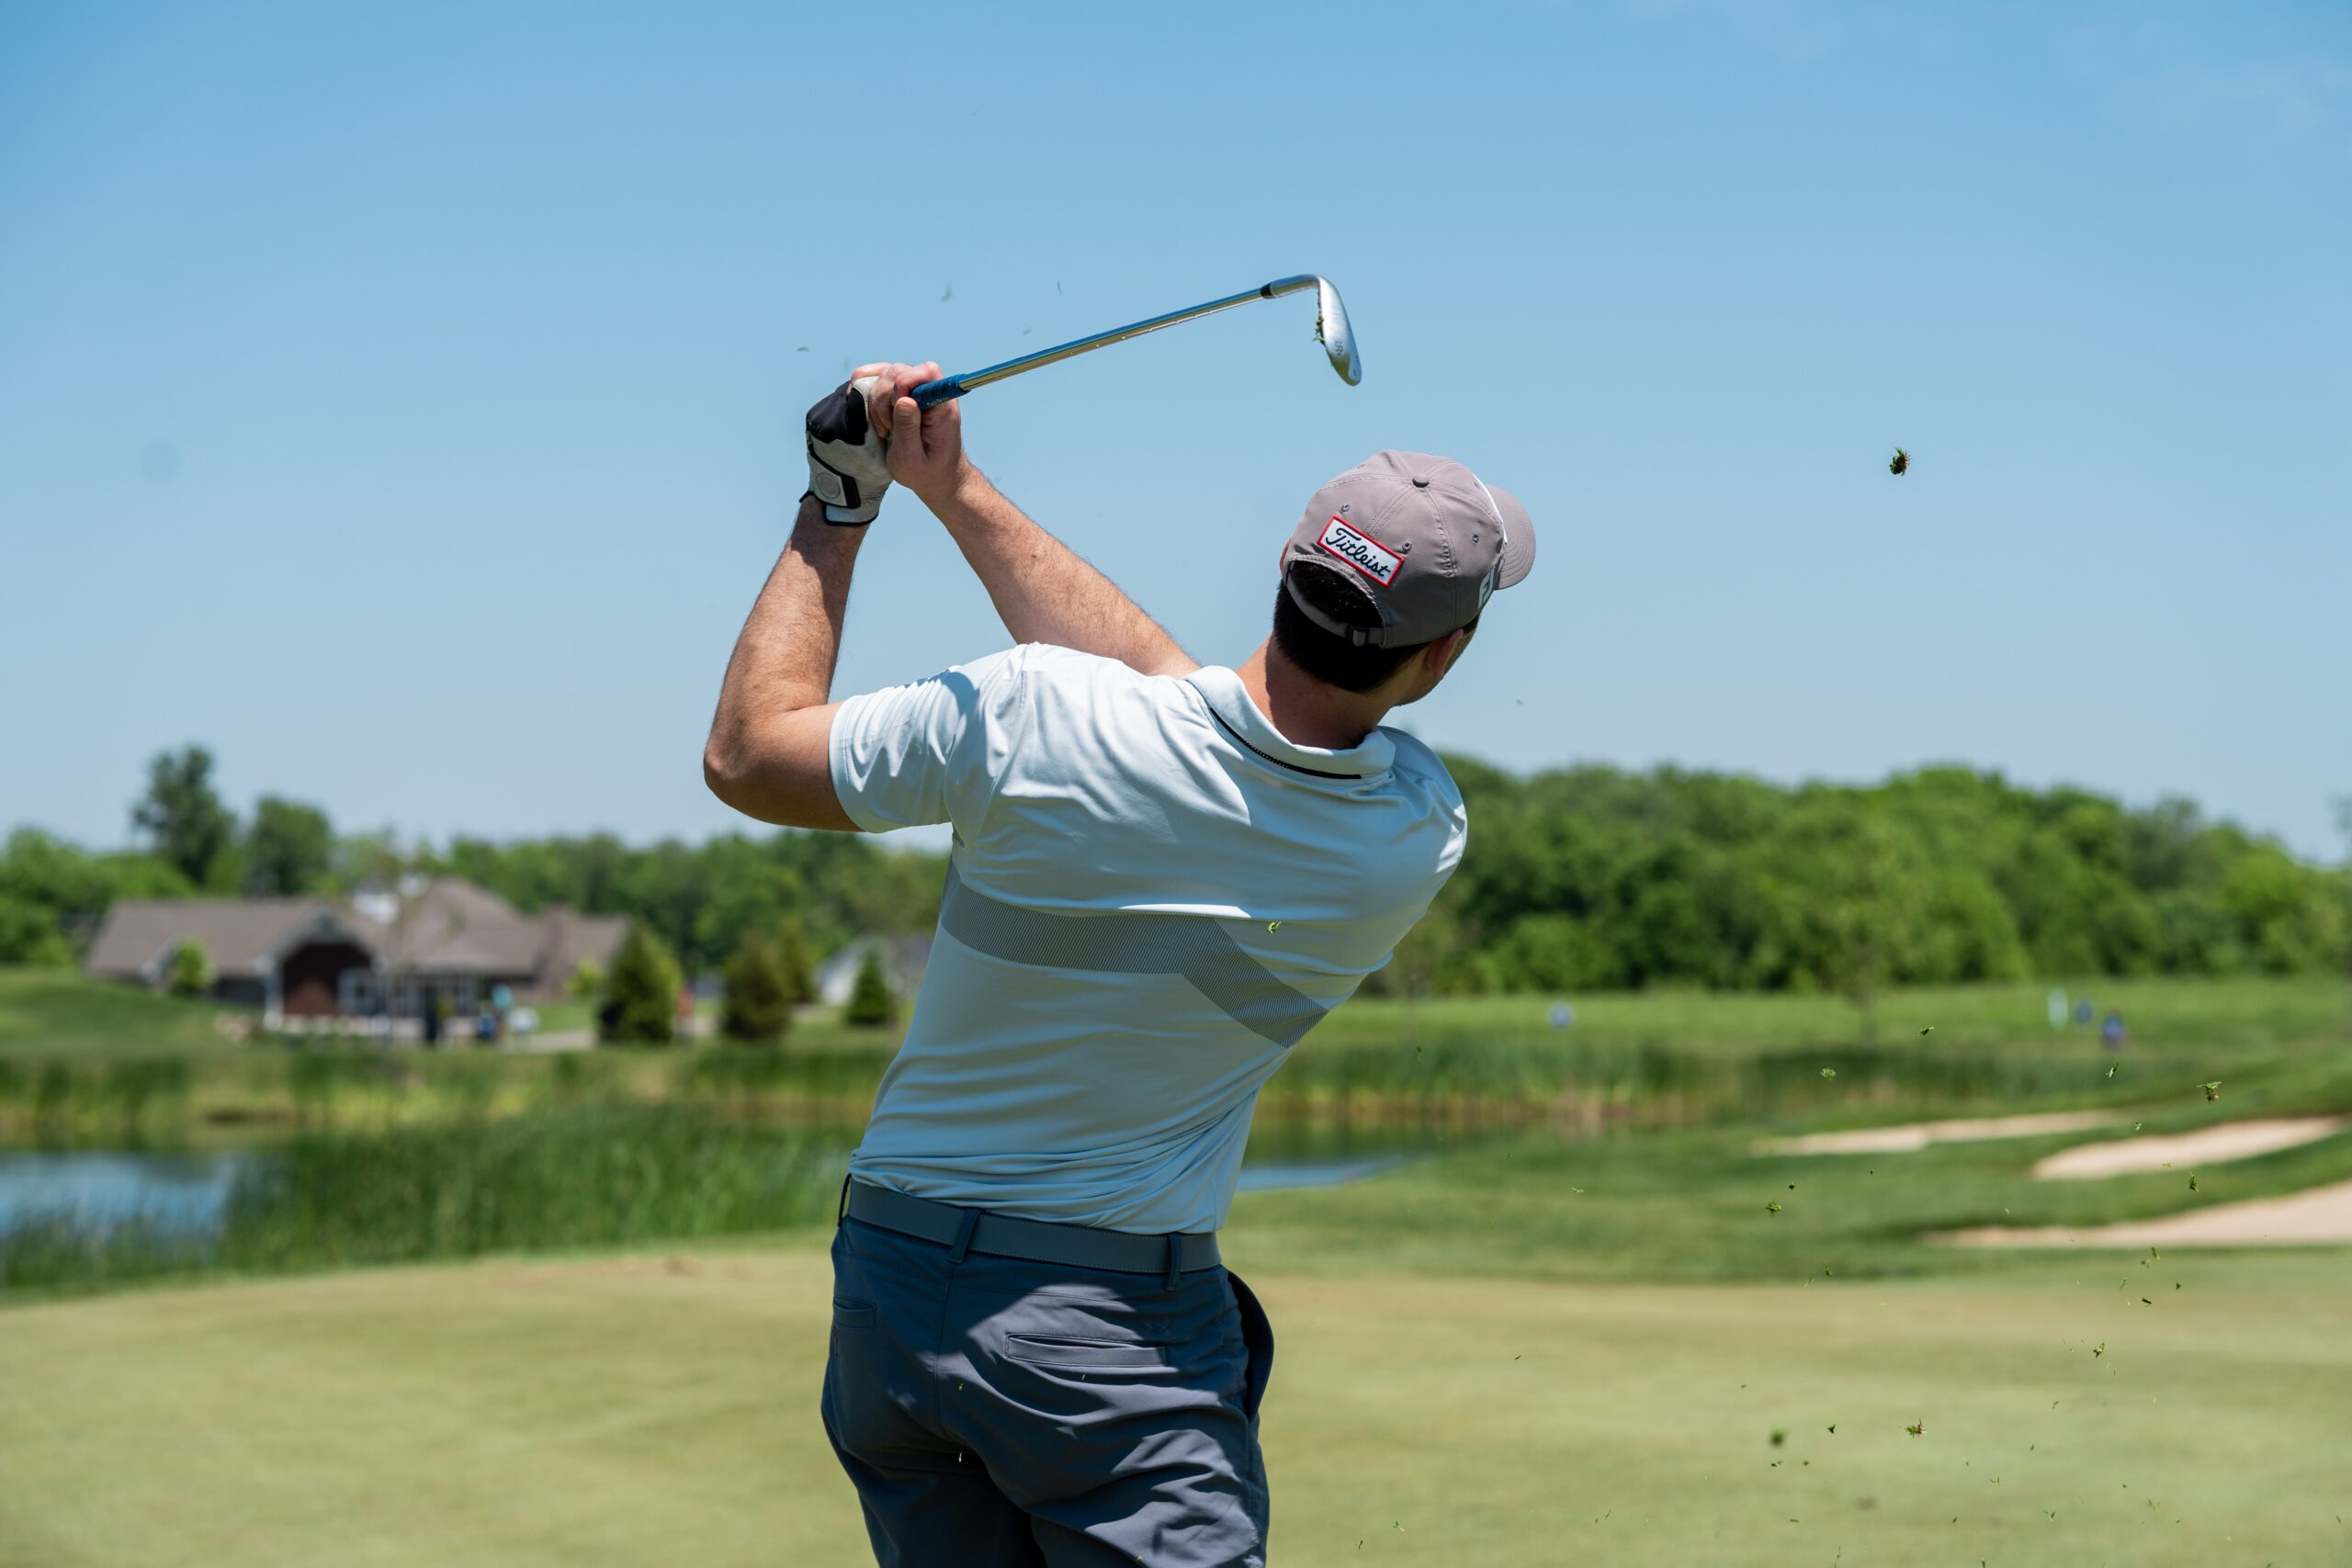 To dial in distance on wedge shots, should players focus more on swing length or swing speed?